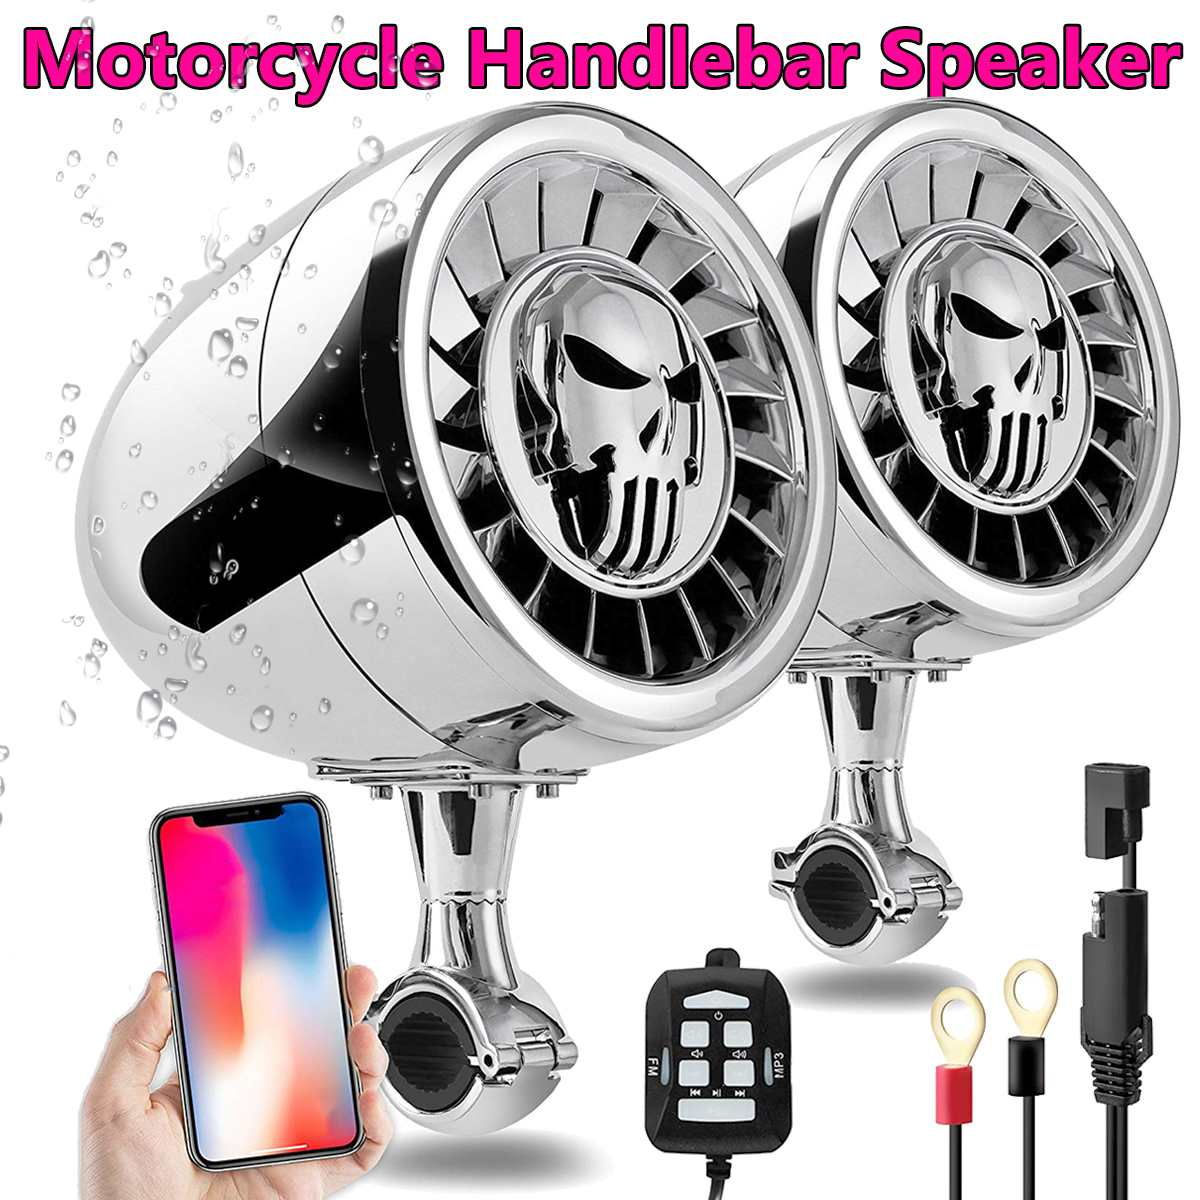 600W 5 Inch MP3 Music Audio Player Bluetooth Speakers For Motorcycle Waterproof Portable Stereo Motos Audio Amp System